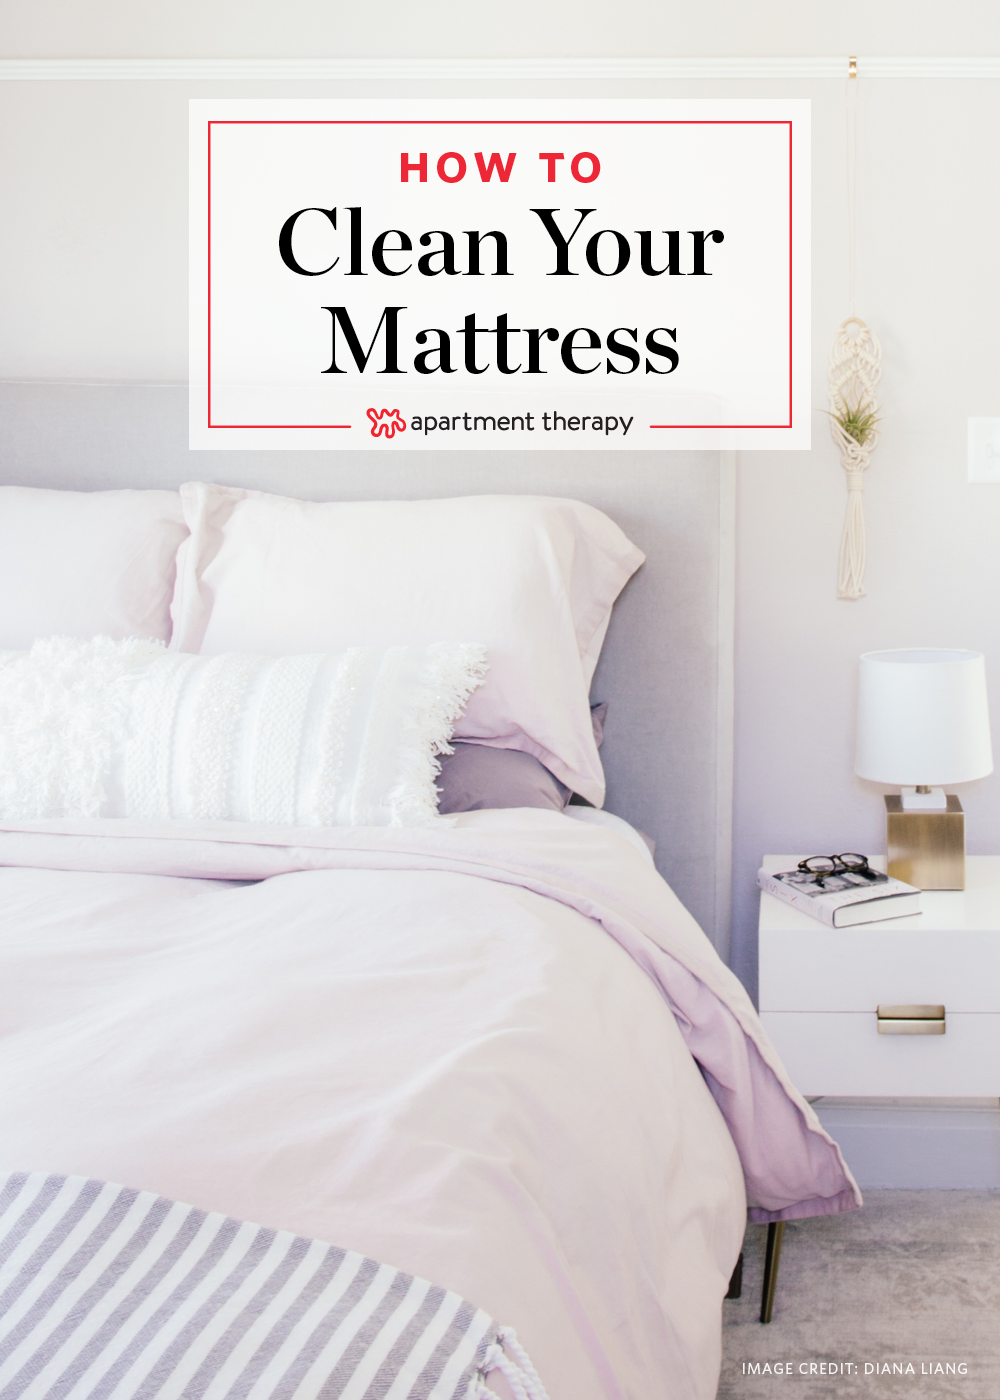 How To Clean A Mattress Best Way To Deep Clean Your Mattress Stains Apartment Therapy